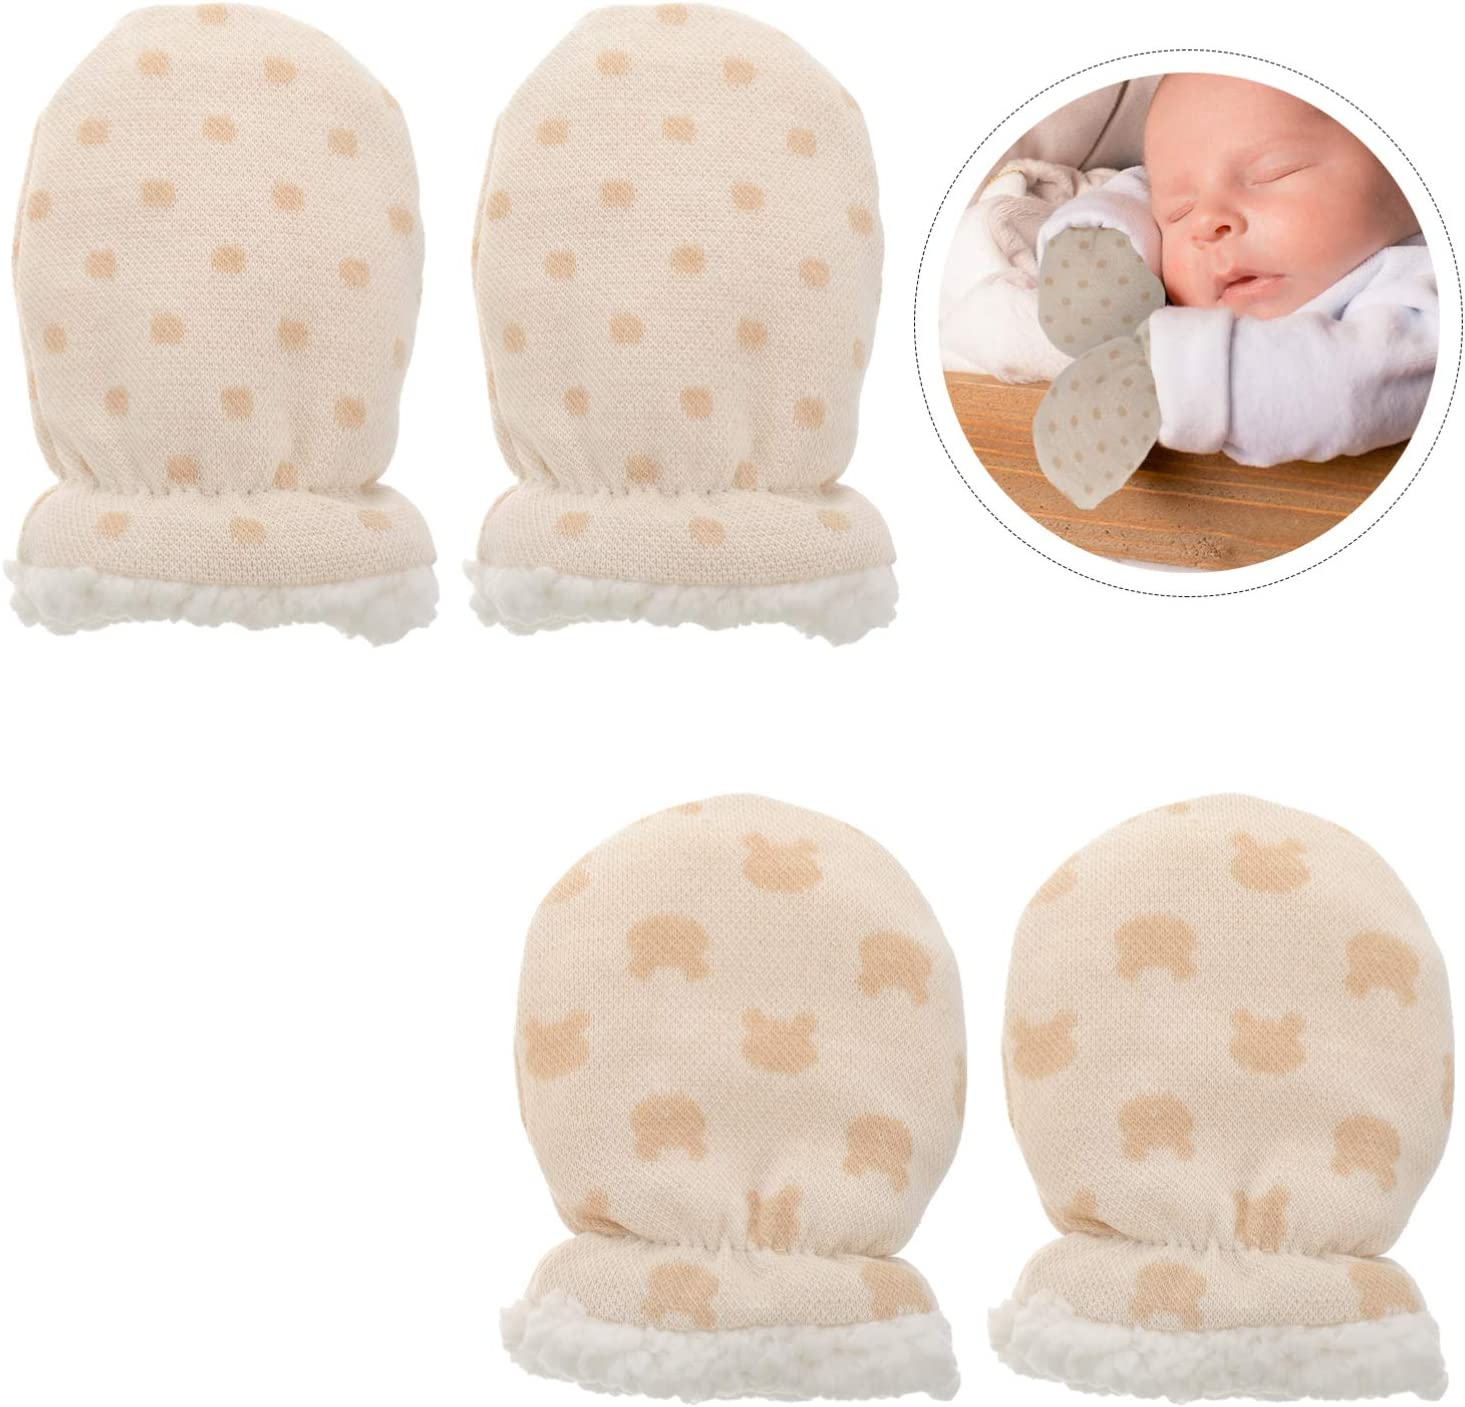 SOIMISS 2 Pairs Newborn Baby Mittens No Scratch Cotton Glove Cozy Thickened Hand Gloves Ant-Scratch Hand Covers